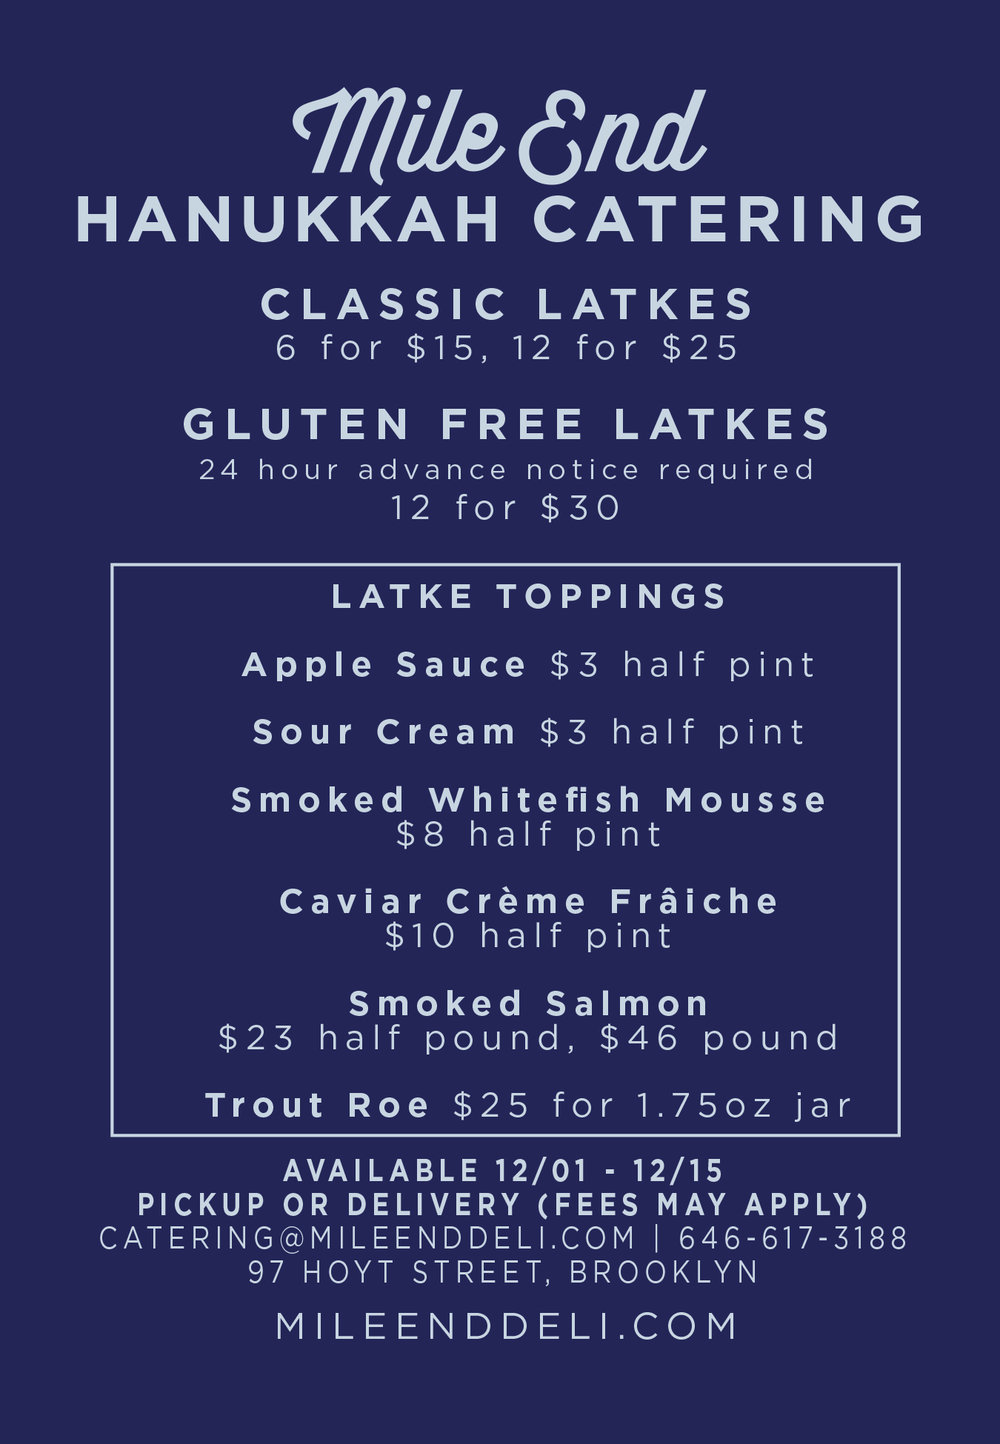 OUR FULL CATERING MENU IS AVAILABLE THROUGHOUT THE HOLIDAYS TO ROUND OUT YOUR CELEBRATIONS. ASK ABOUT OUR SPECIAL DESSERTS!